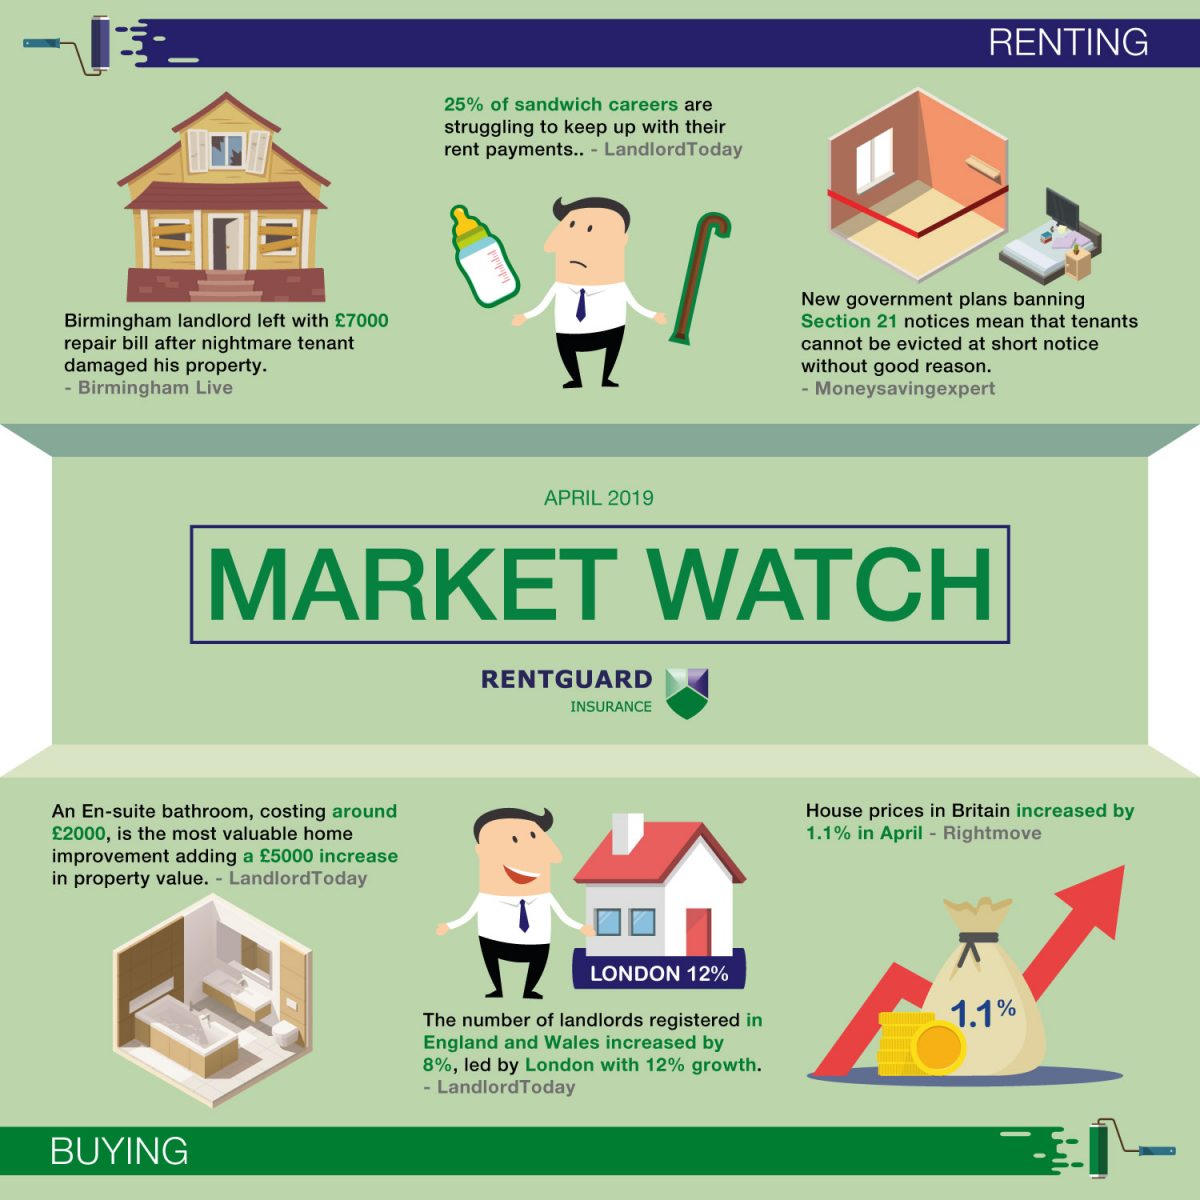 Market watch- April 2019